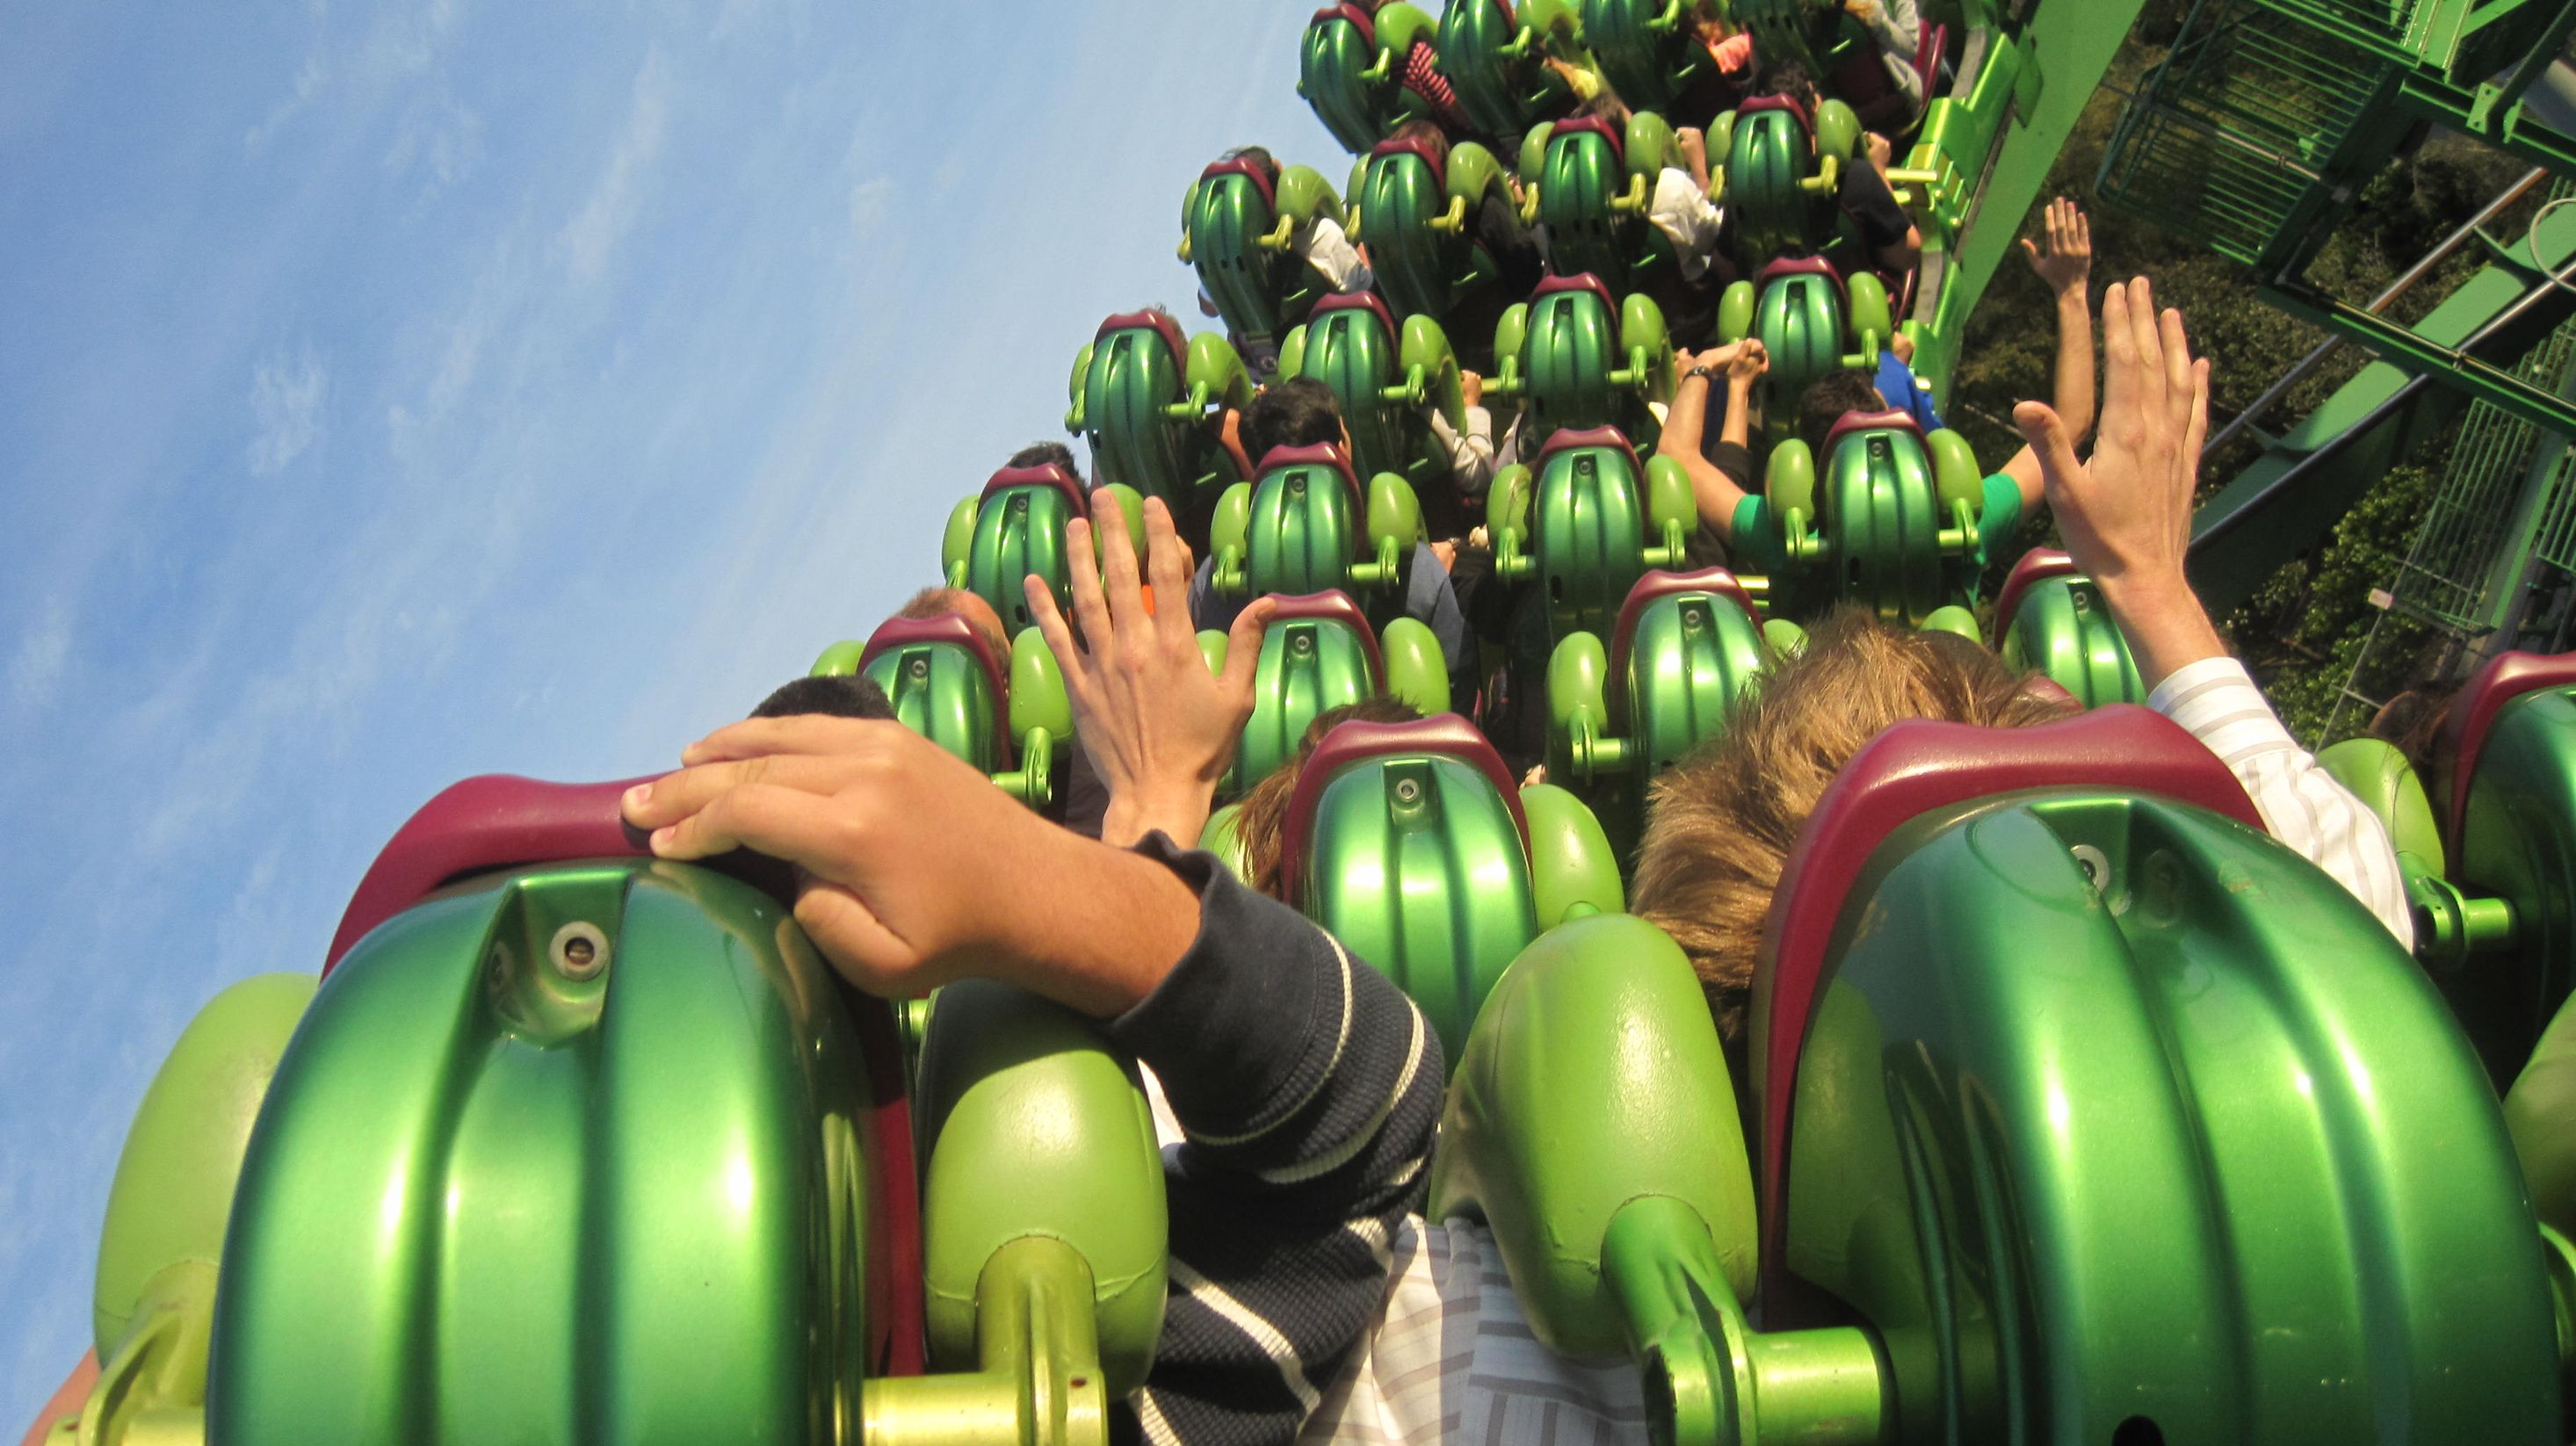 A beautiful shot from the perspective of a roller coaster